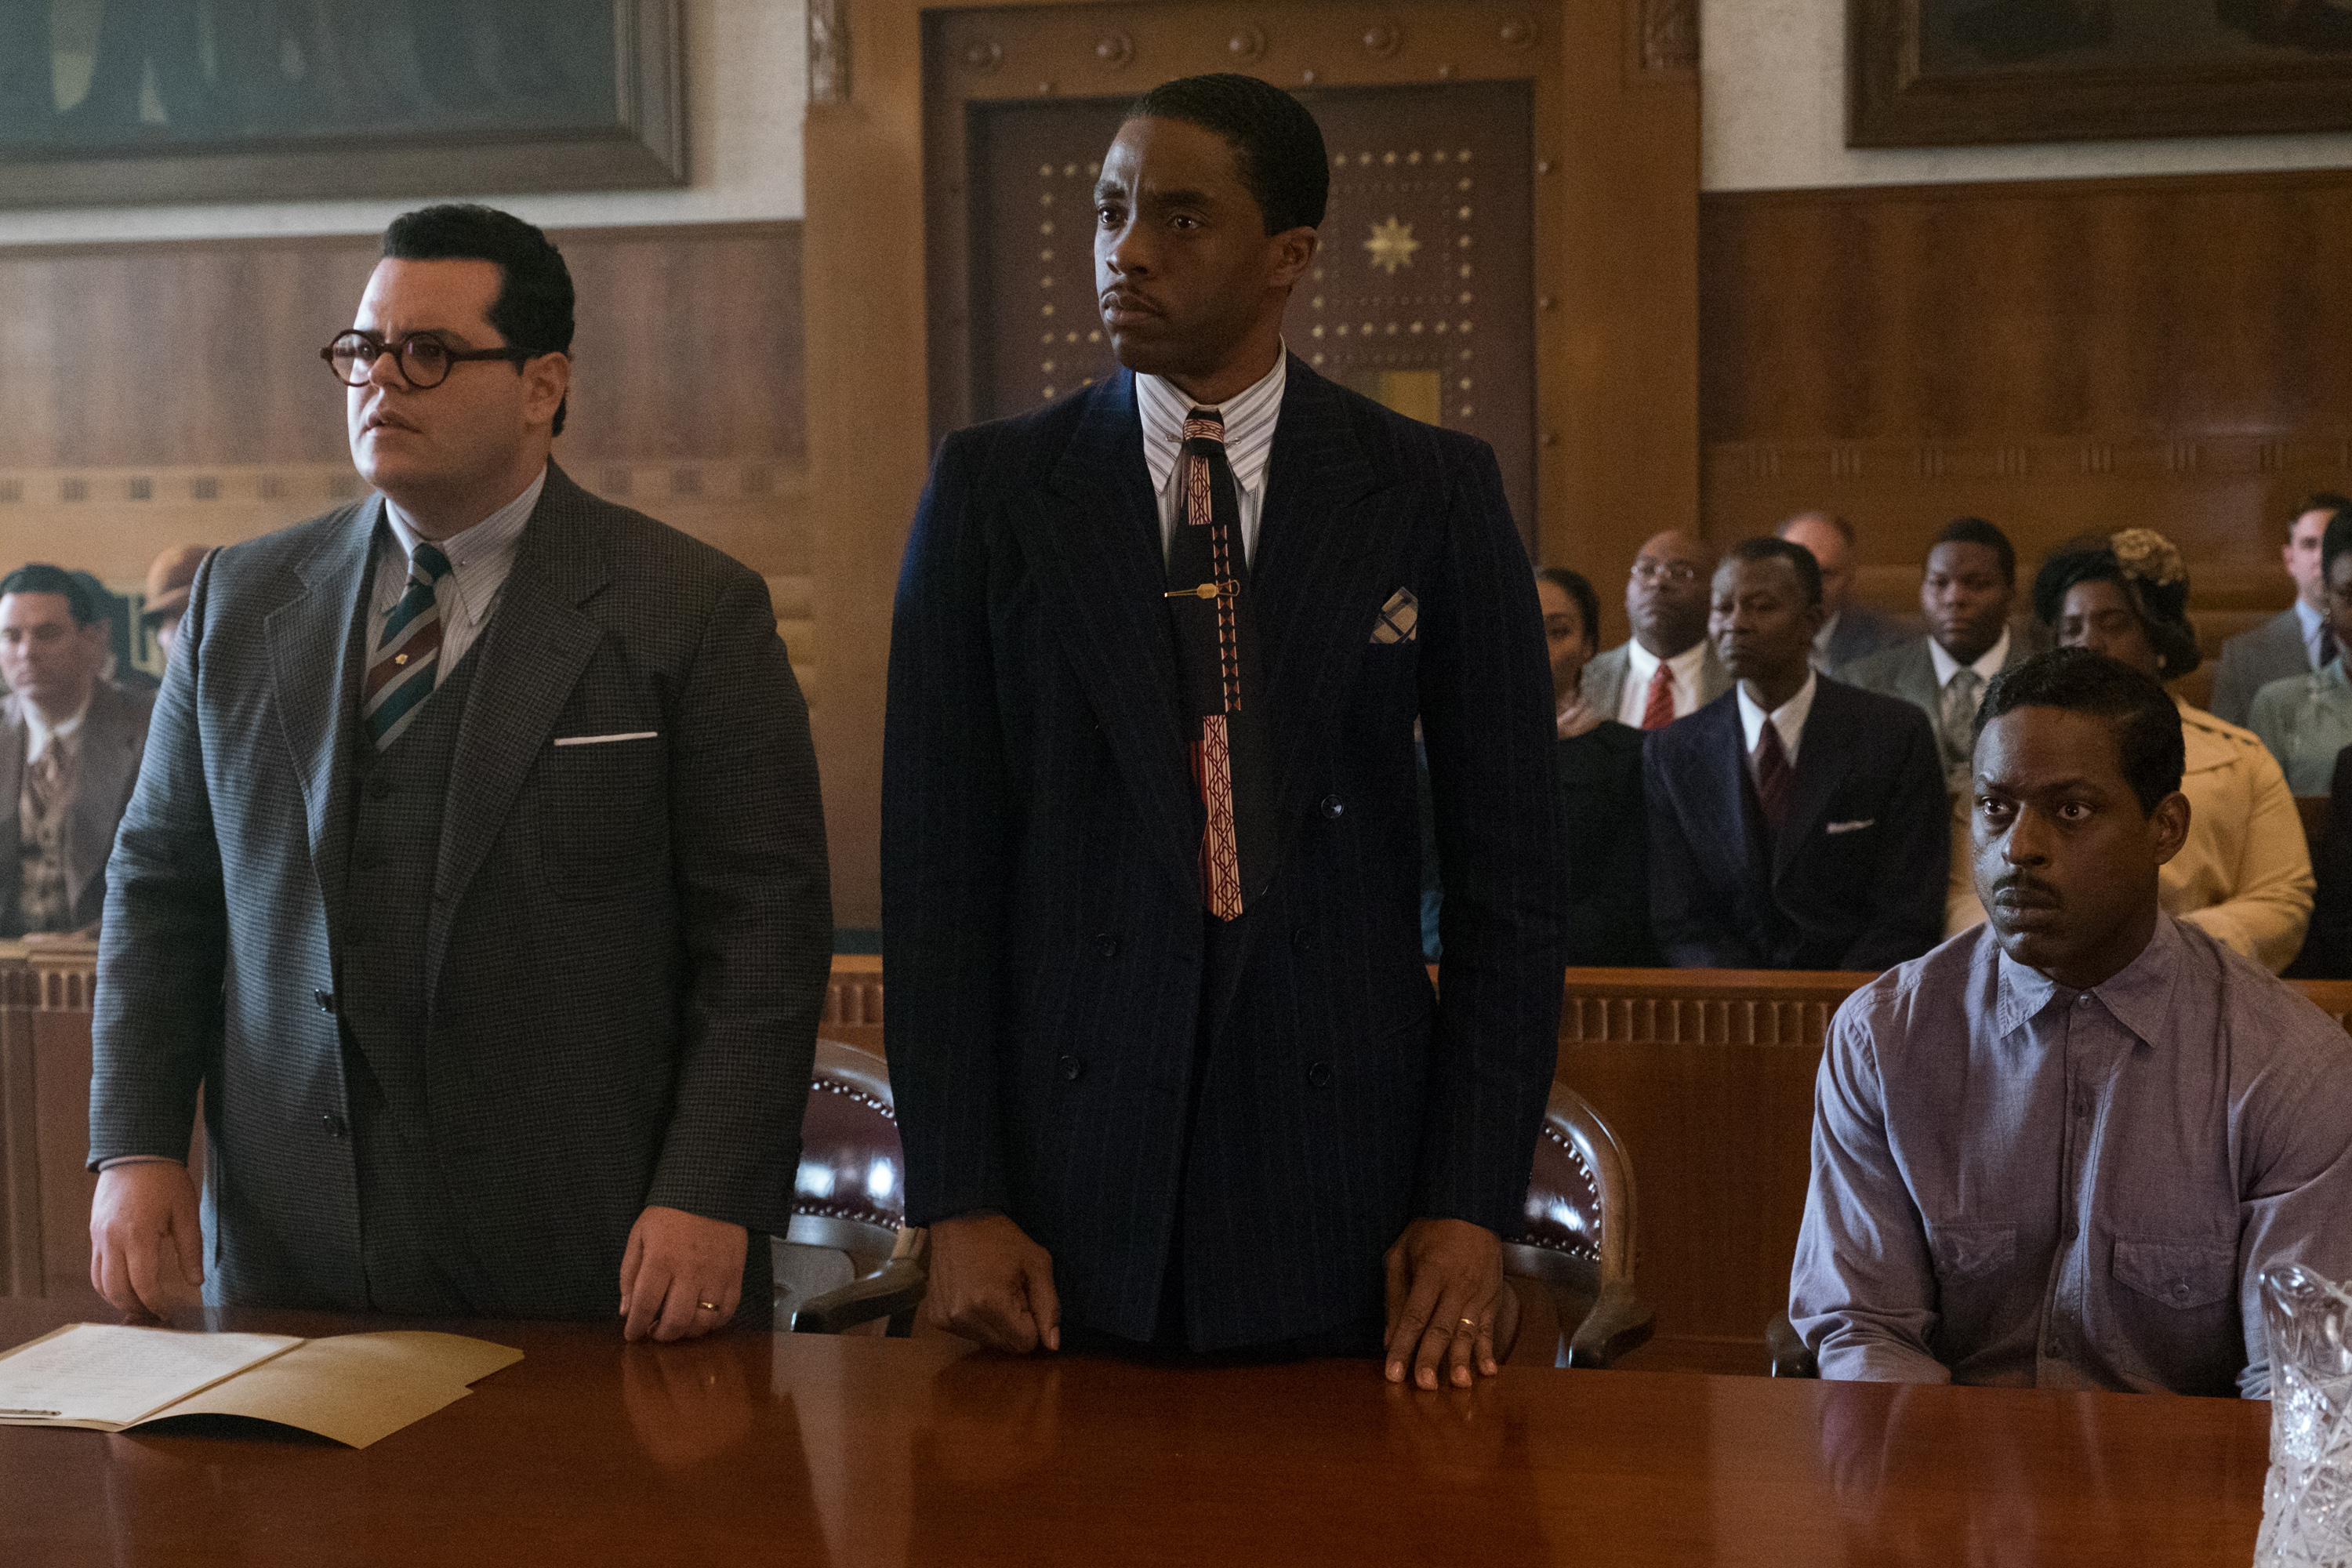 Marshall trailer: Chadwick Boseman stars in the new biopic